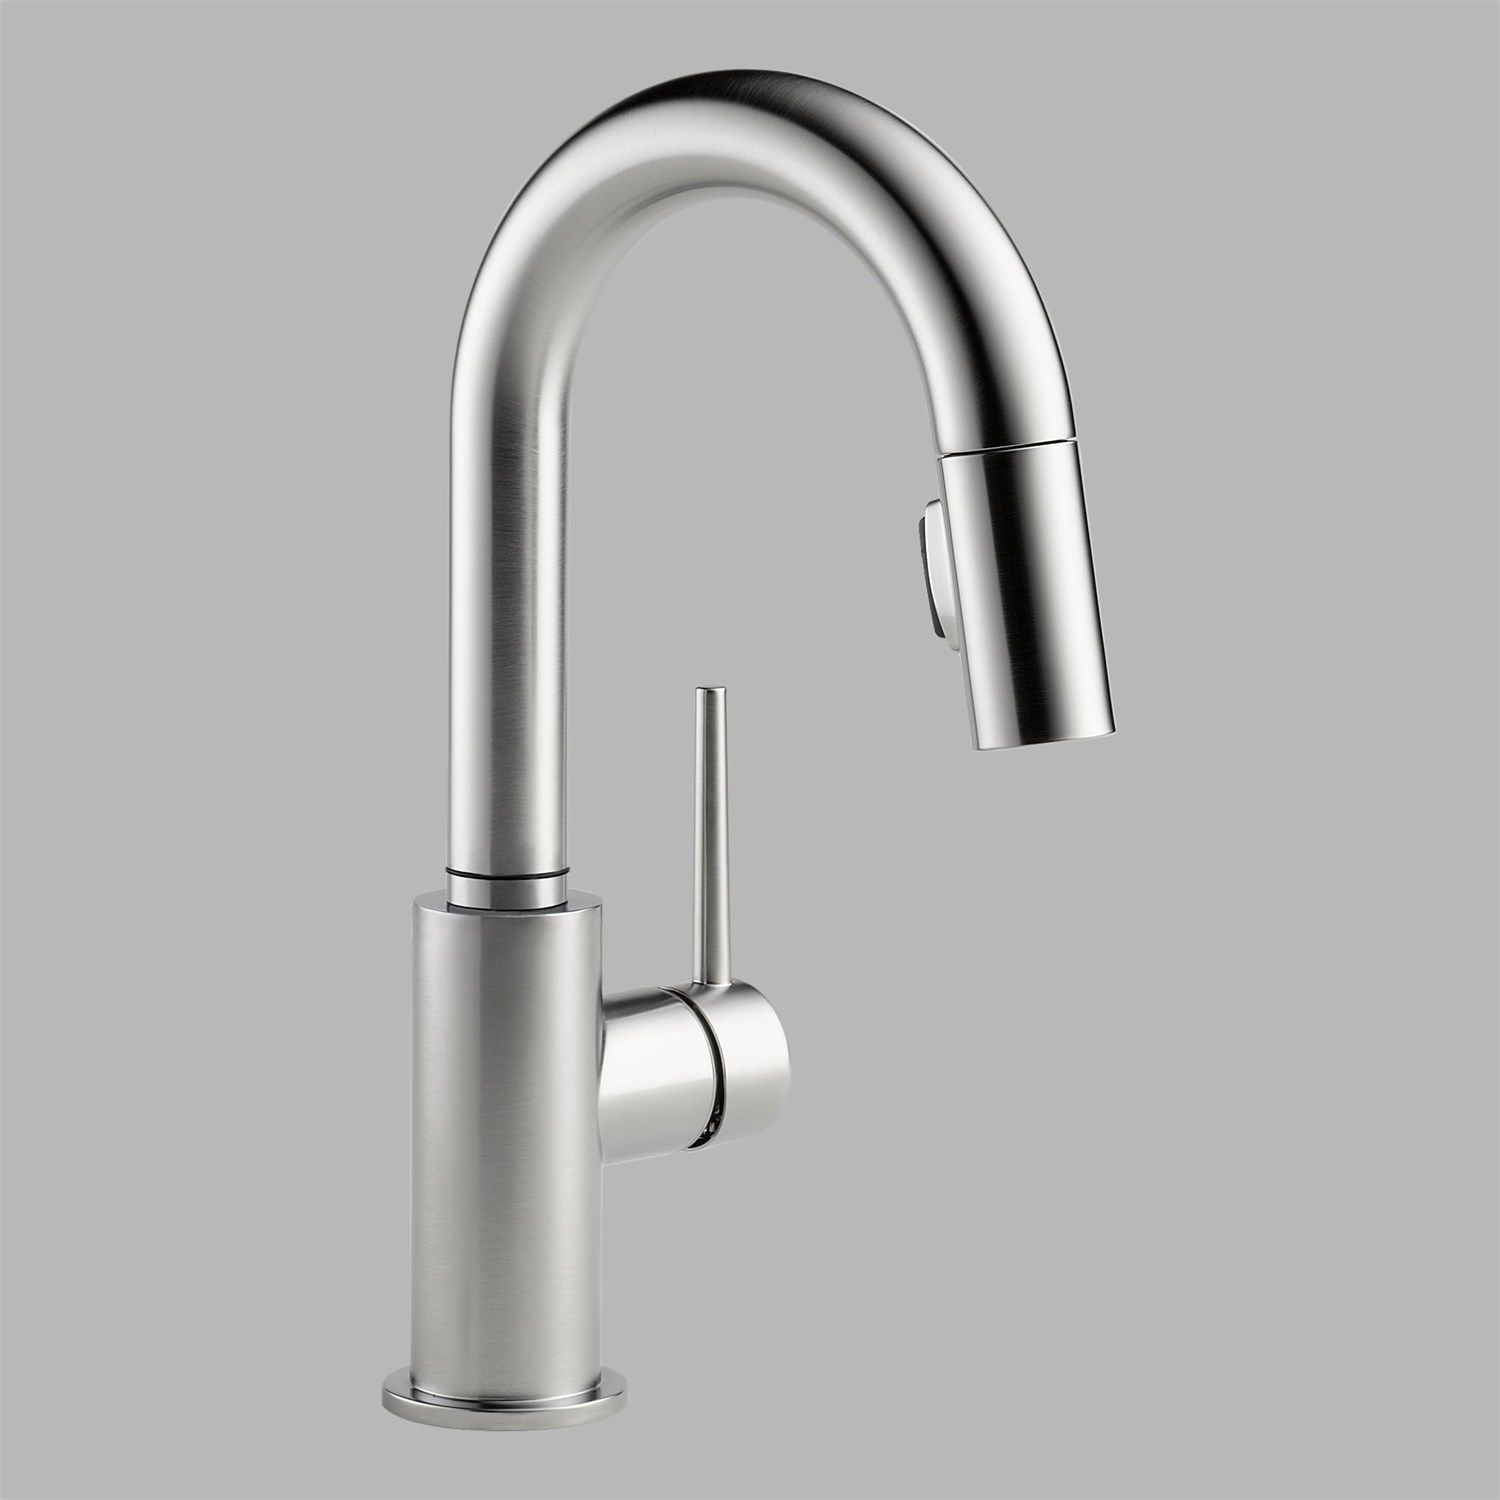 Delta 9959 Ar Dst Trinsic Single Handle Pull Down Bar Prep Faucet In